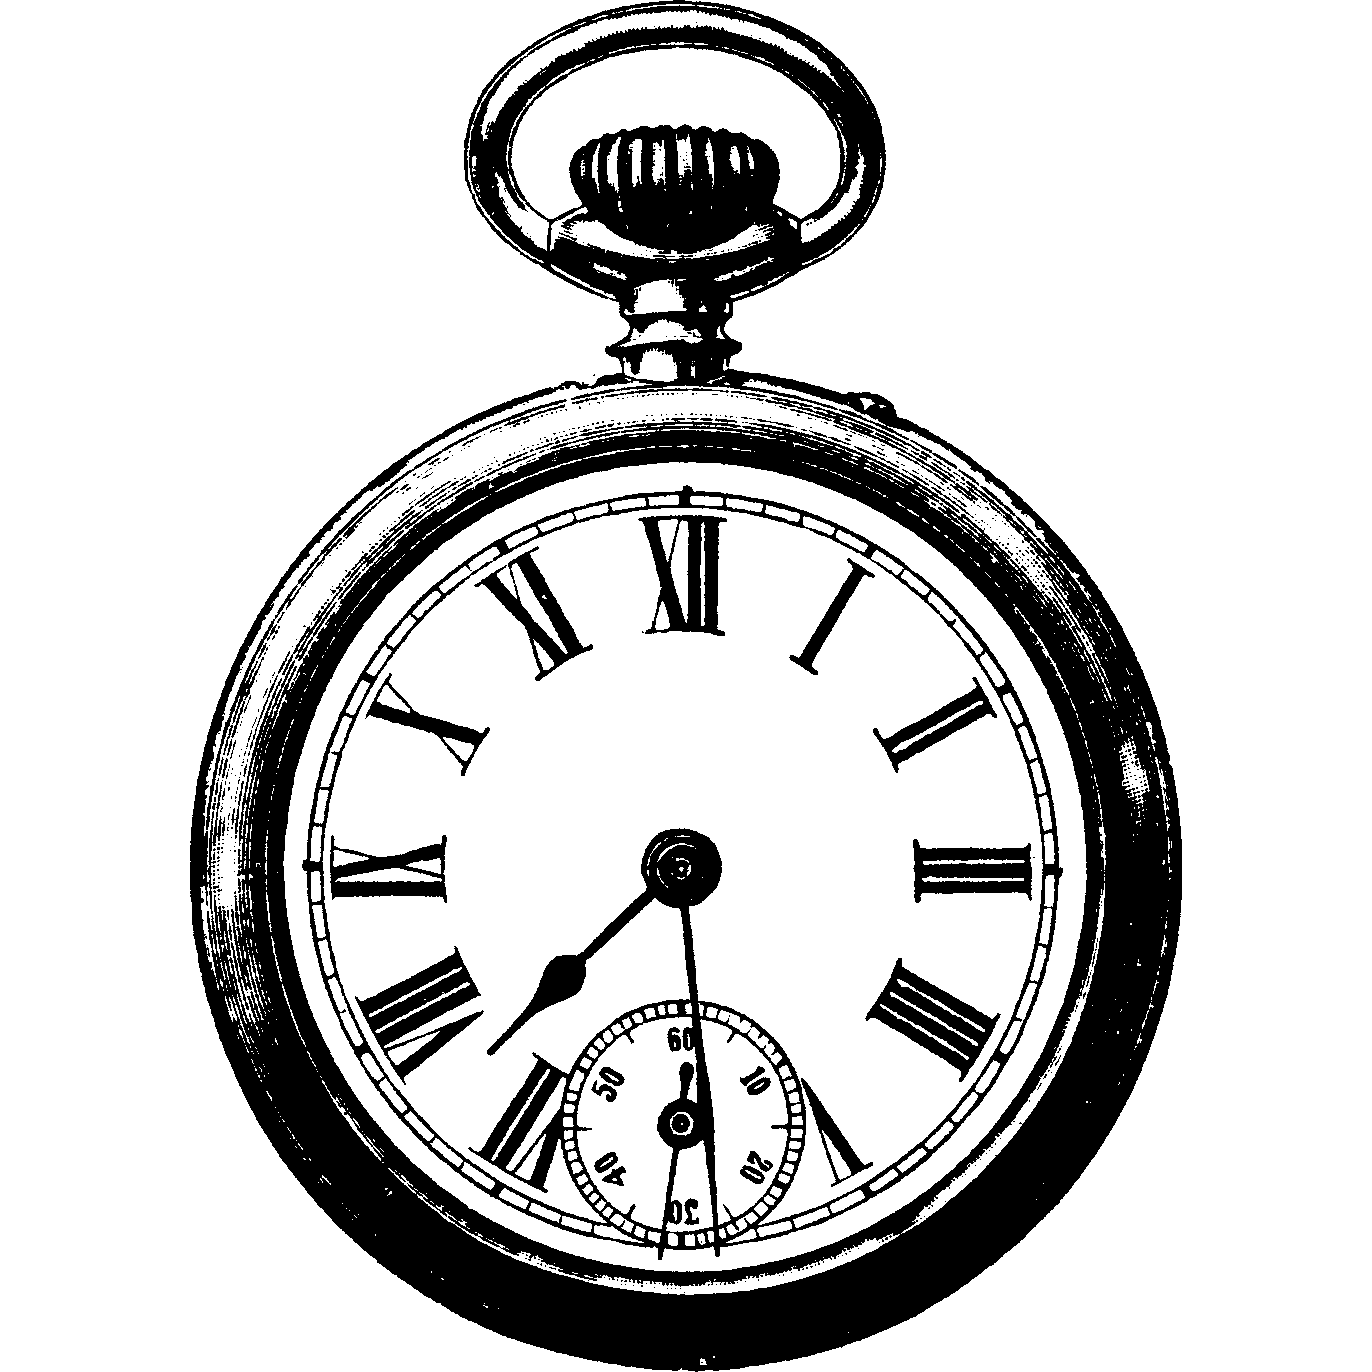 Vintage pocket watch bw. Clocks clipart clear background